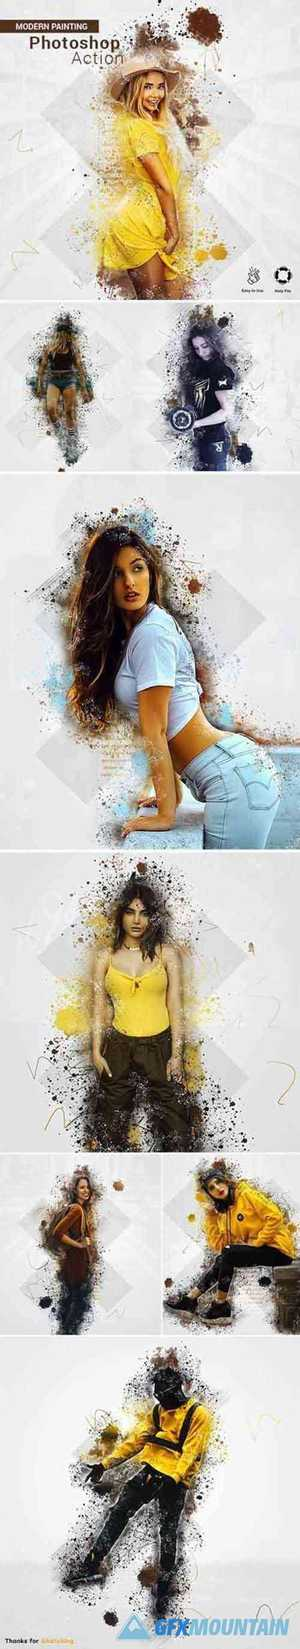 Painting Photoshop Action 27497079